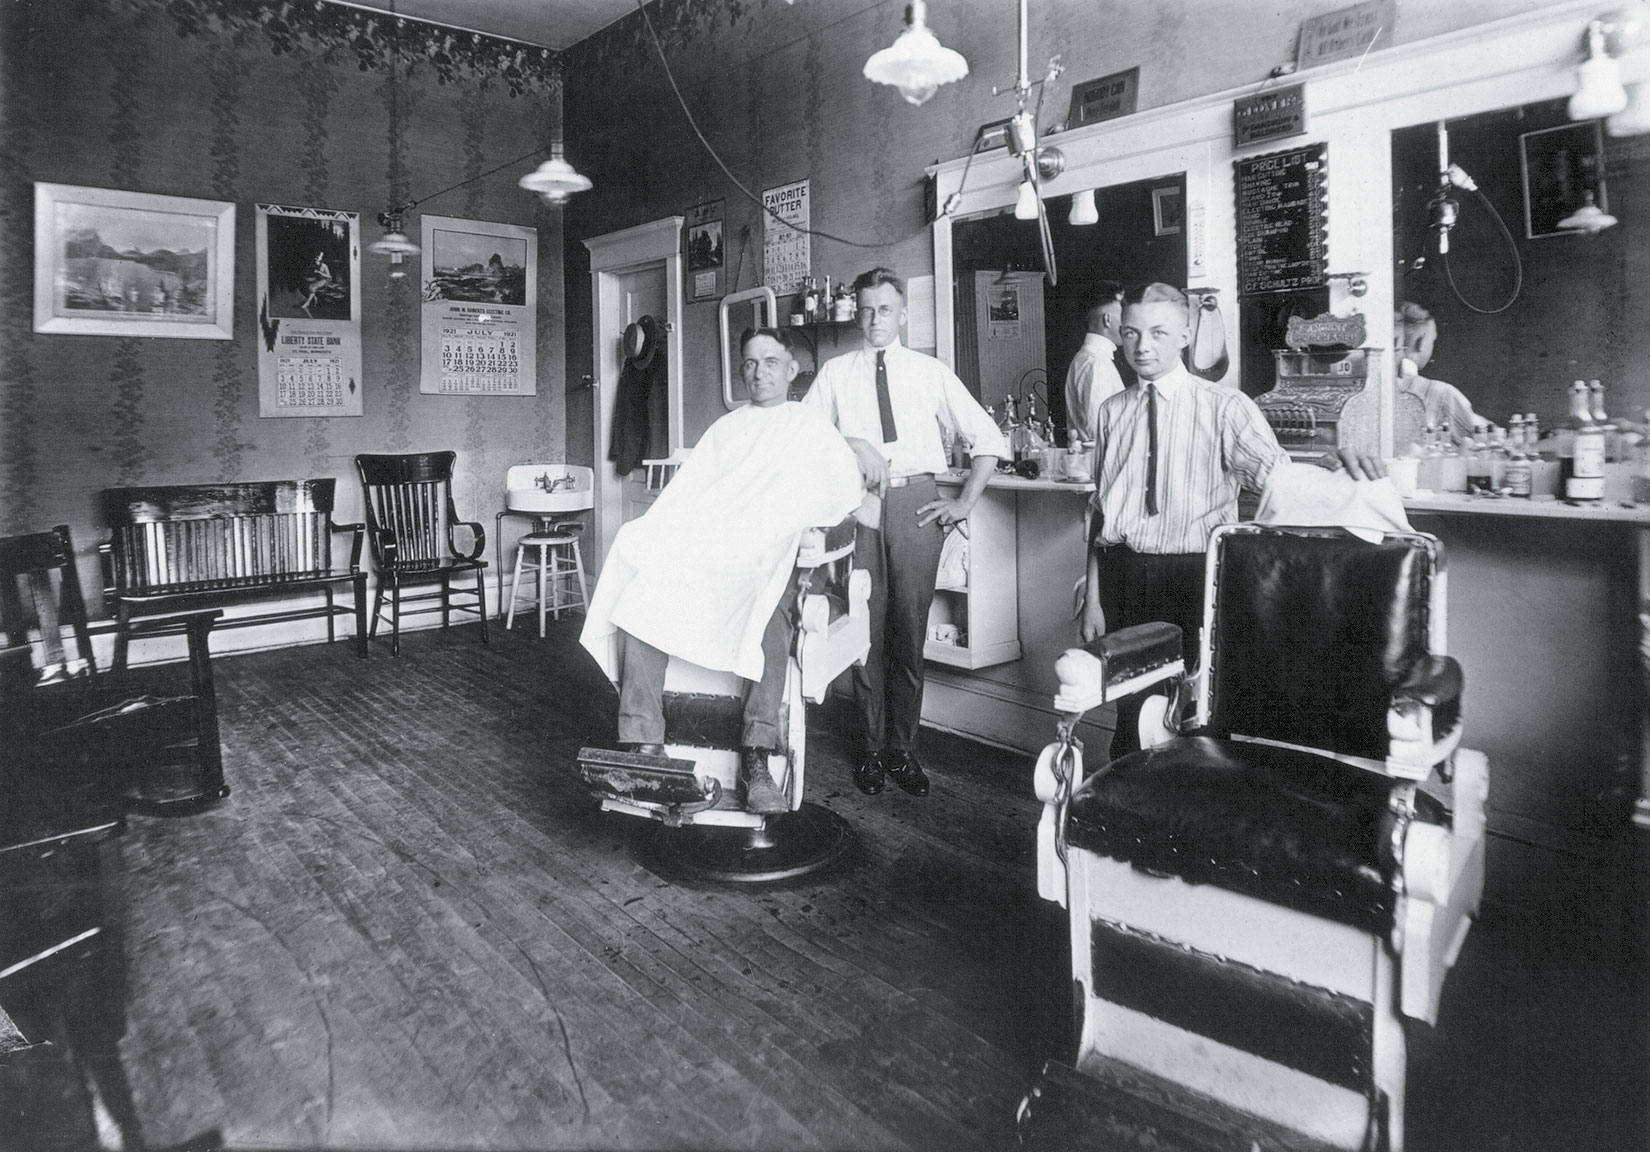 Carl Schulz (far left) with a client in July, 1921. The price list on the wall indicates that a shave was a quarter, a mustache trim a nickel.